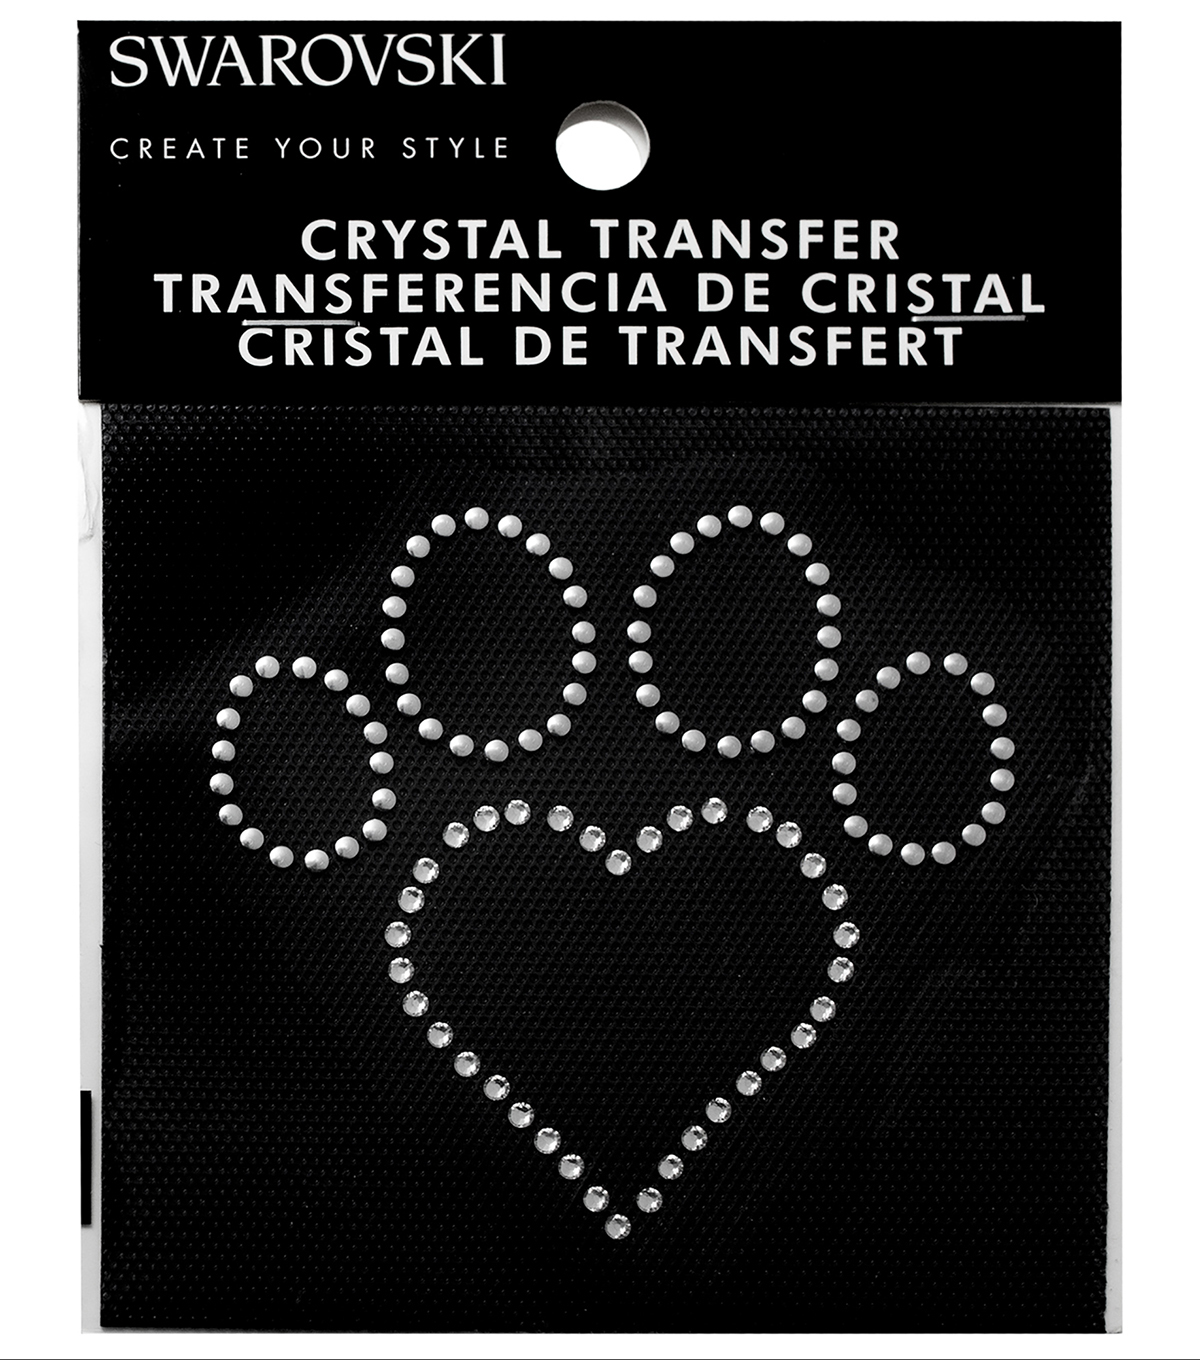 Swarovski Create Your Style Dog Paw Crystals Iron-on Transfer